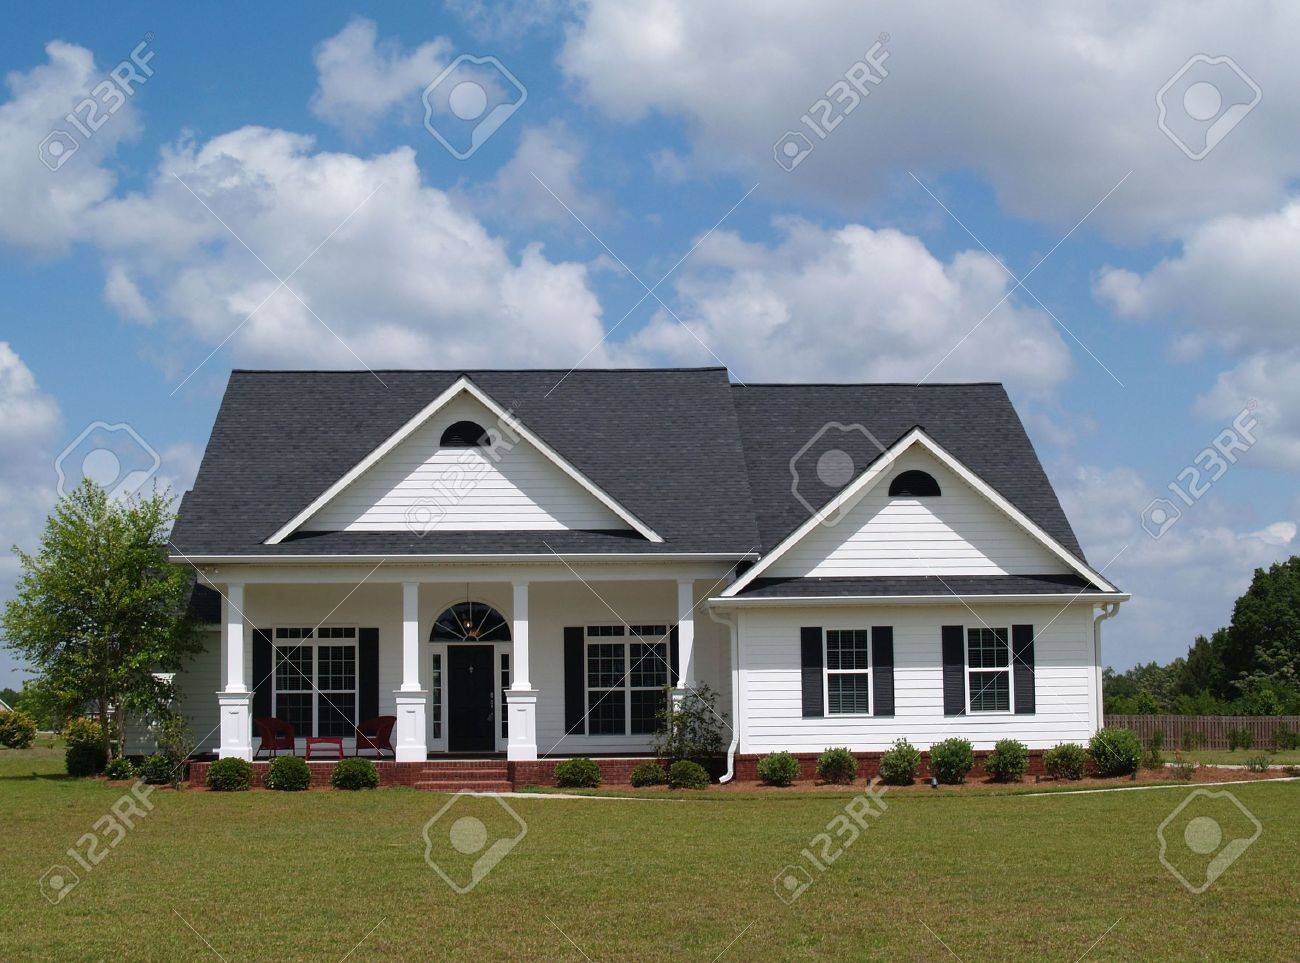 One story residential home with board siding on the facade. - 5520079